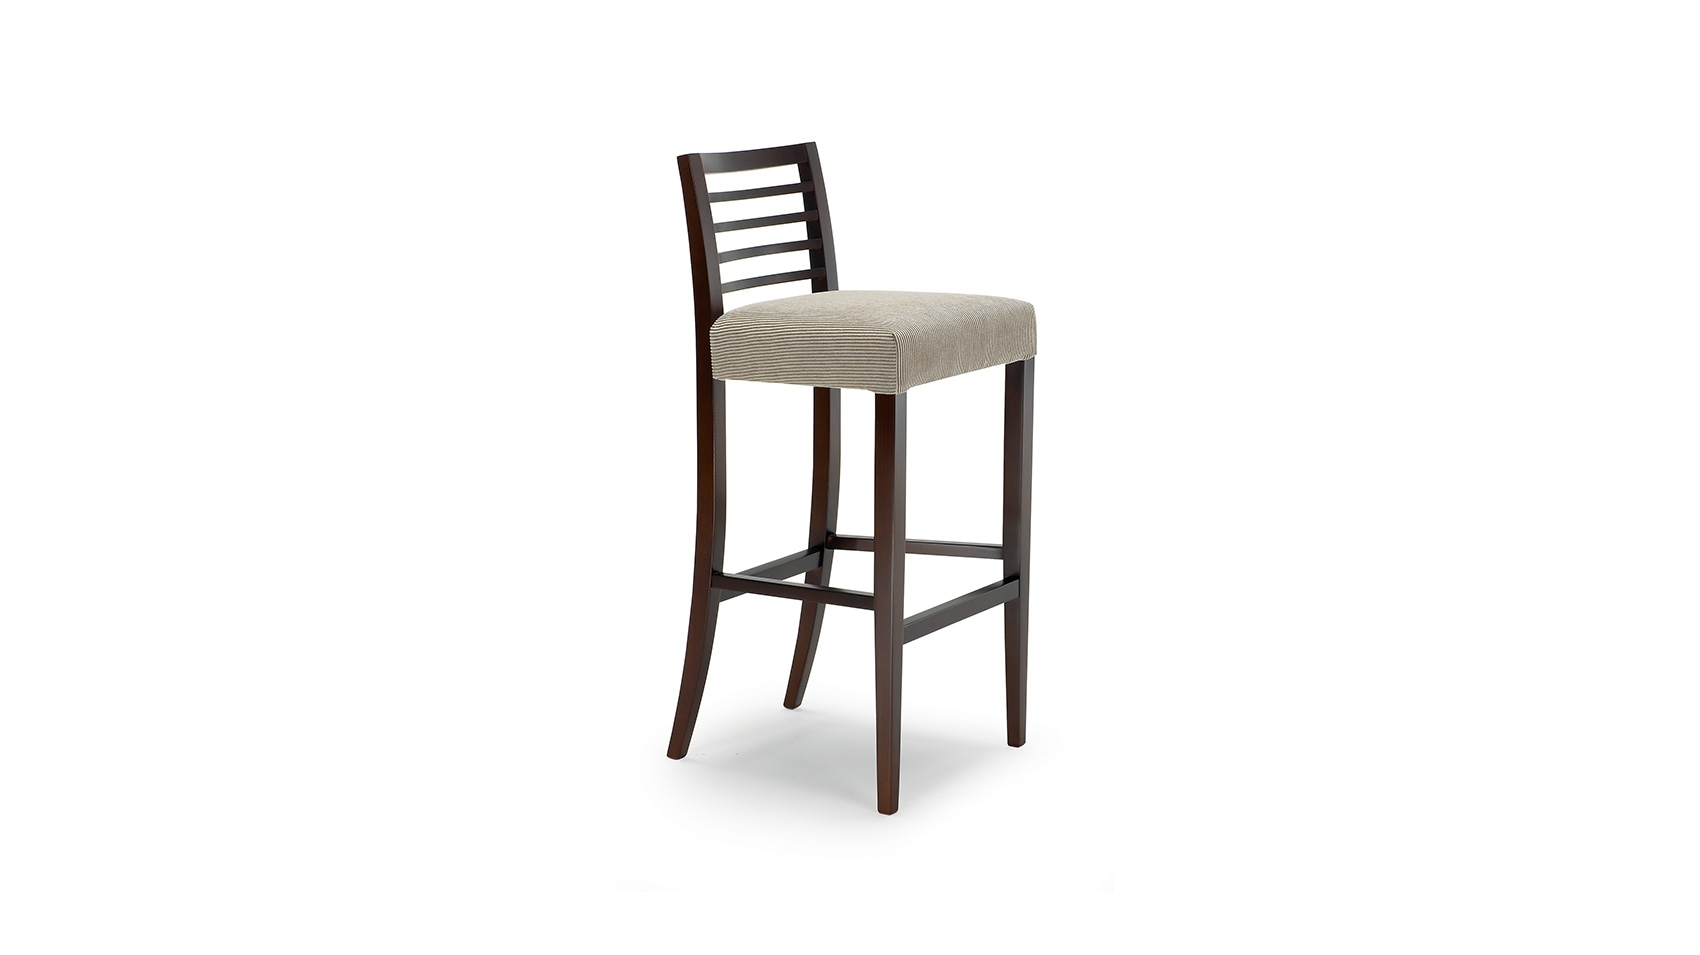 Awesome Veneto Is A Classic Design. Well Constructed With Crisp And Simple Lines,  Veneto Never Goes Out Of Style. Available As An Armed Or Armless Side/dining  Chair ...